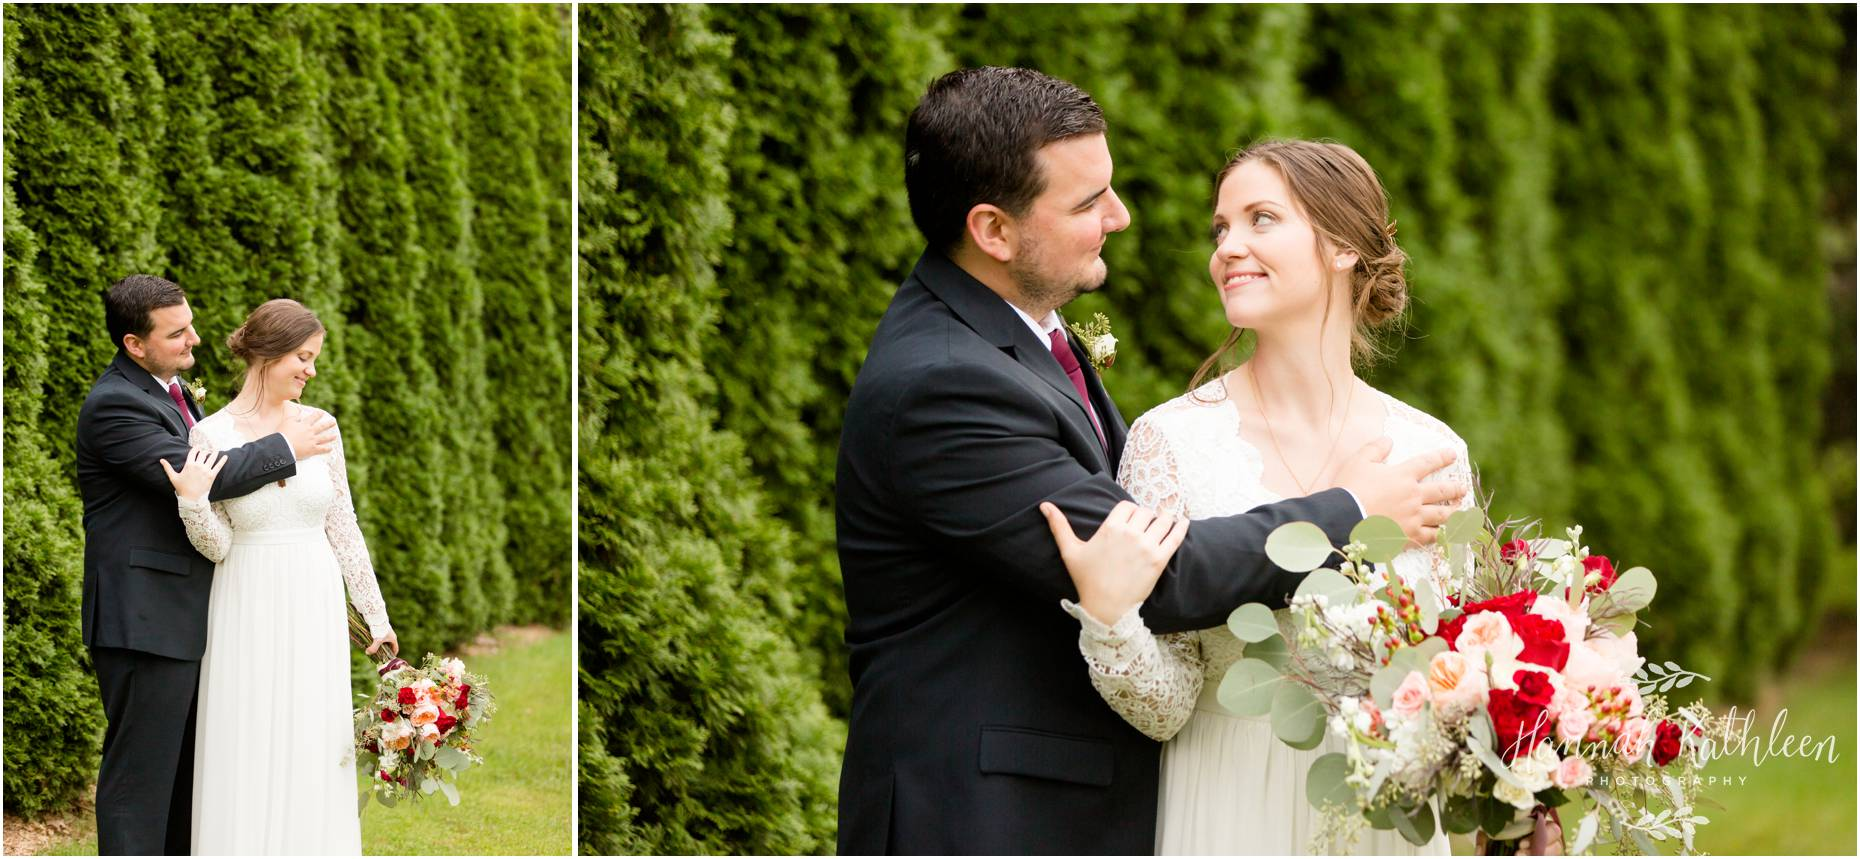 Hartford_Connecticut_Wedding_Photographer_Ray_Nicole